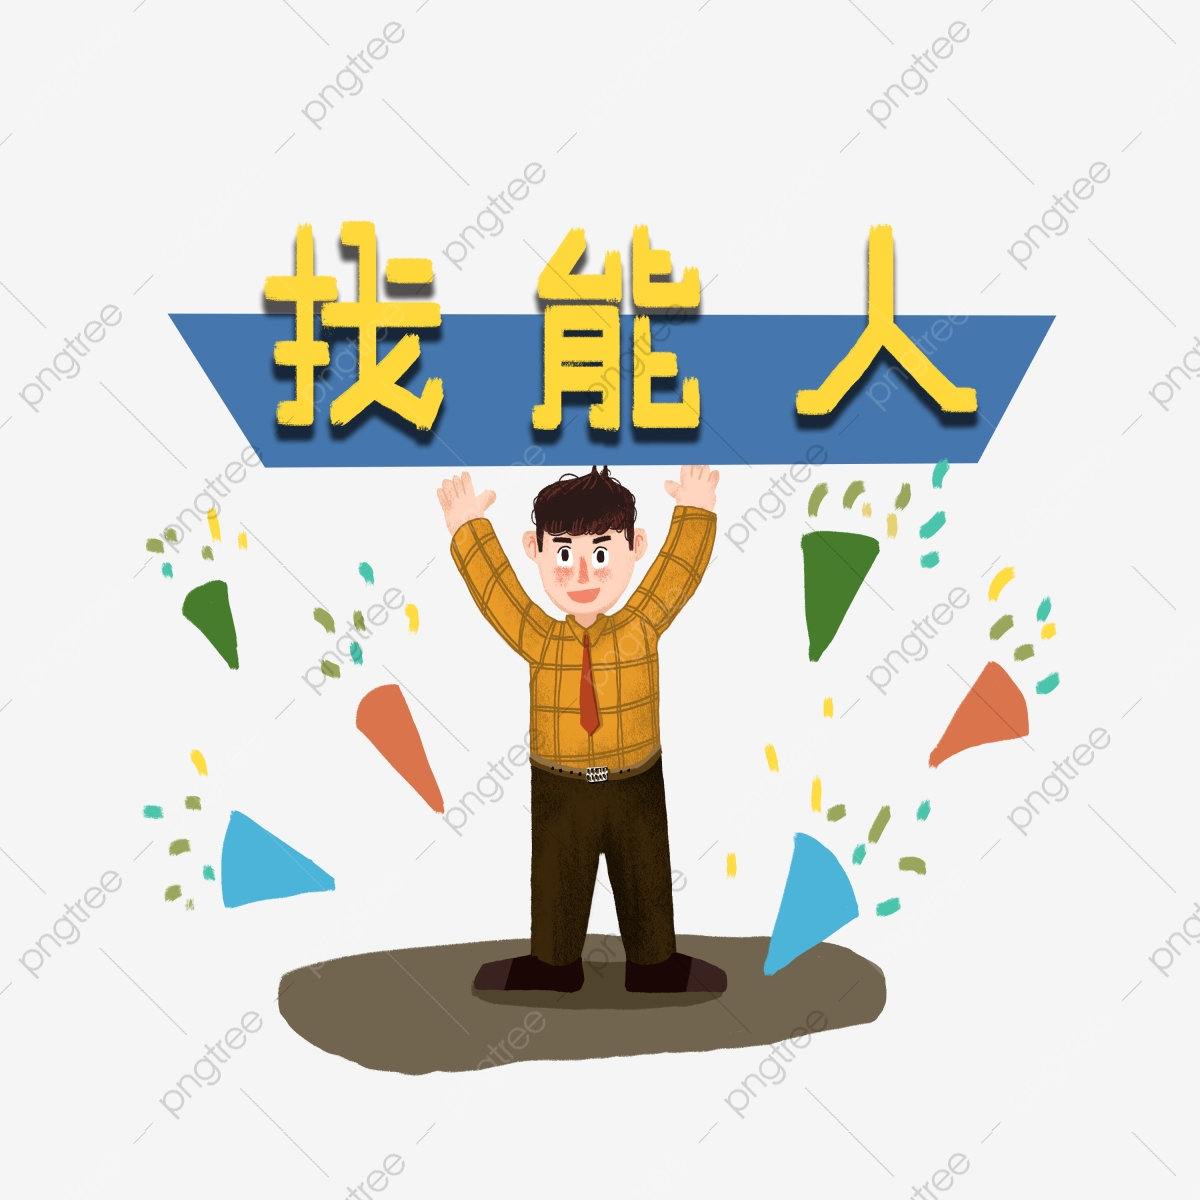 Cartoon Recruitment Job Search Hand Painted Cartoon Character Png Transparent Clipart Image And Psd File For Free Download